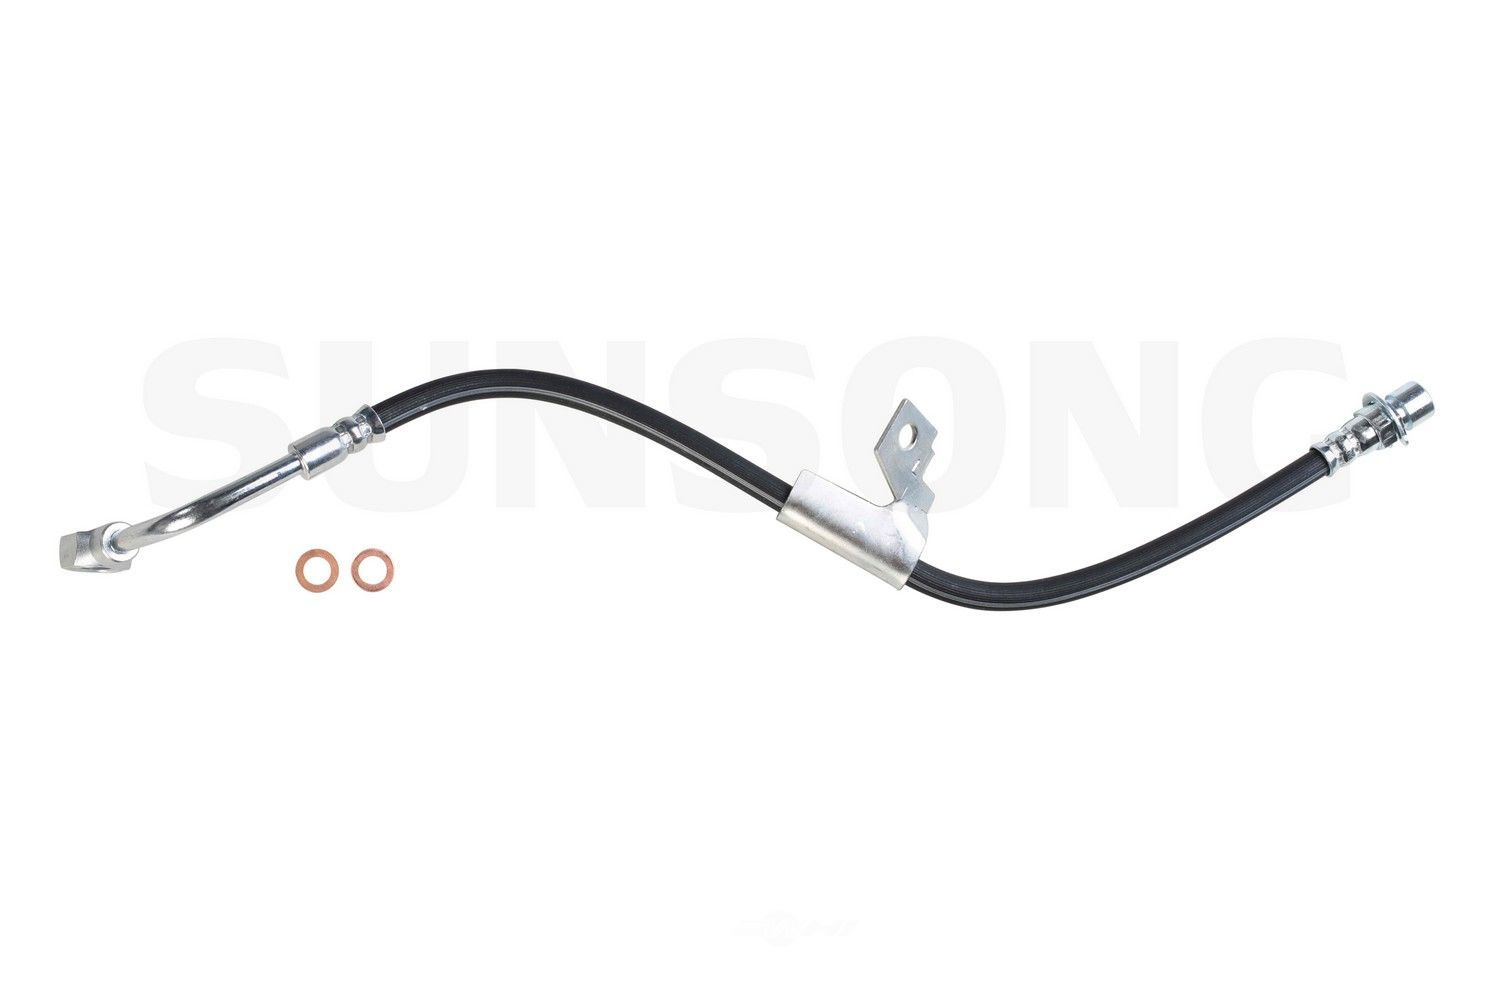 SUNSONG NORTH AMERICA - Brake Hydraulic Hose (Front Left) - SUG 2201015